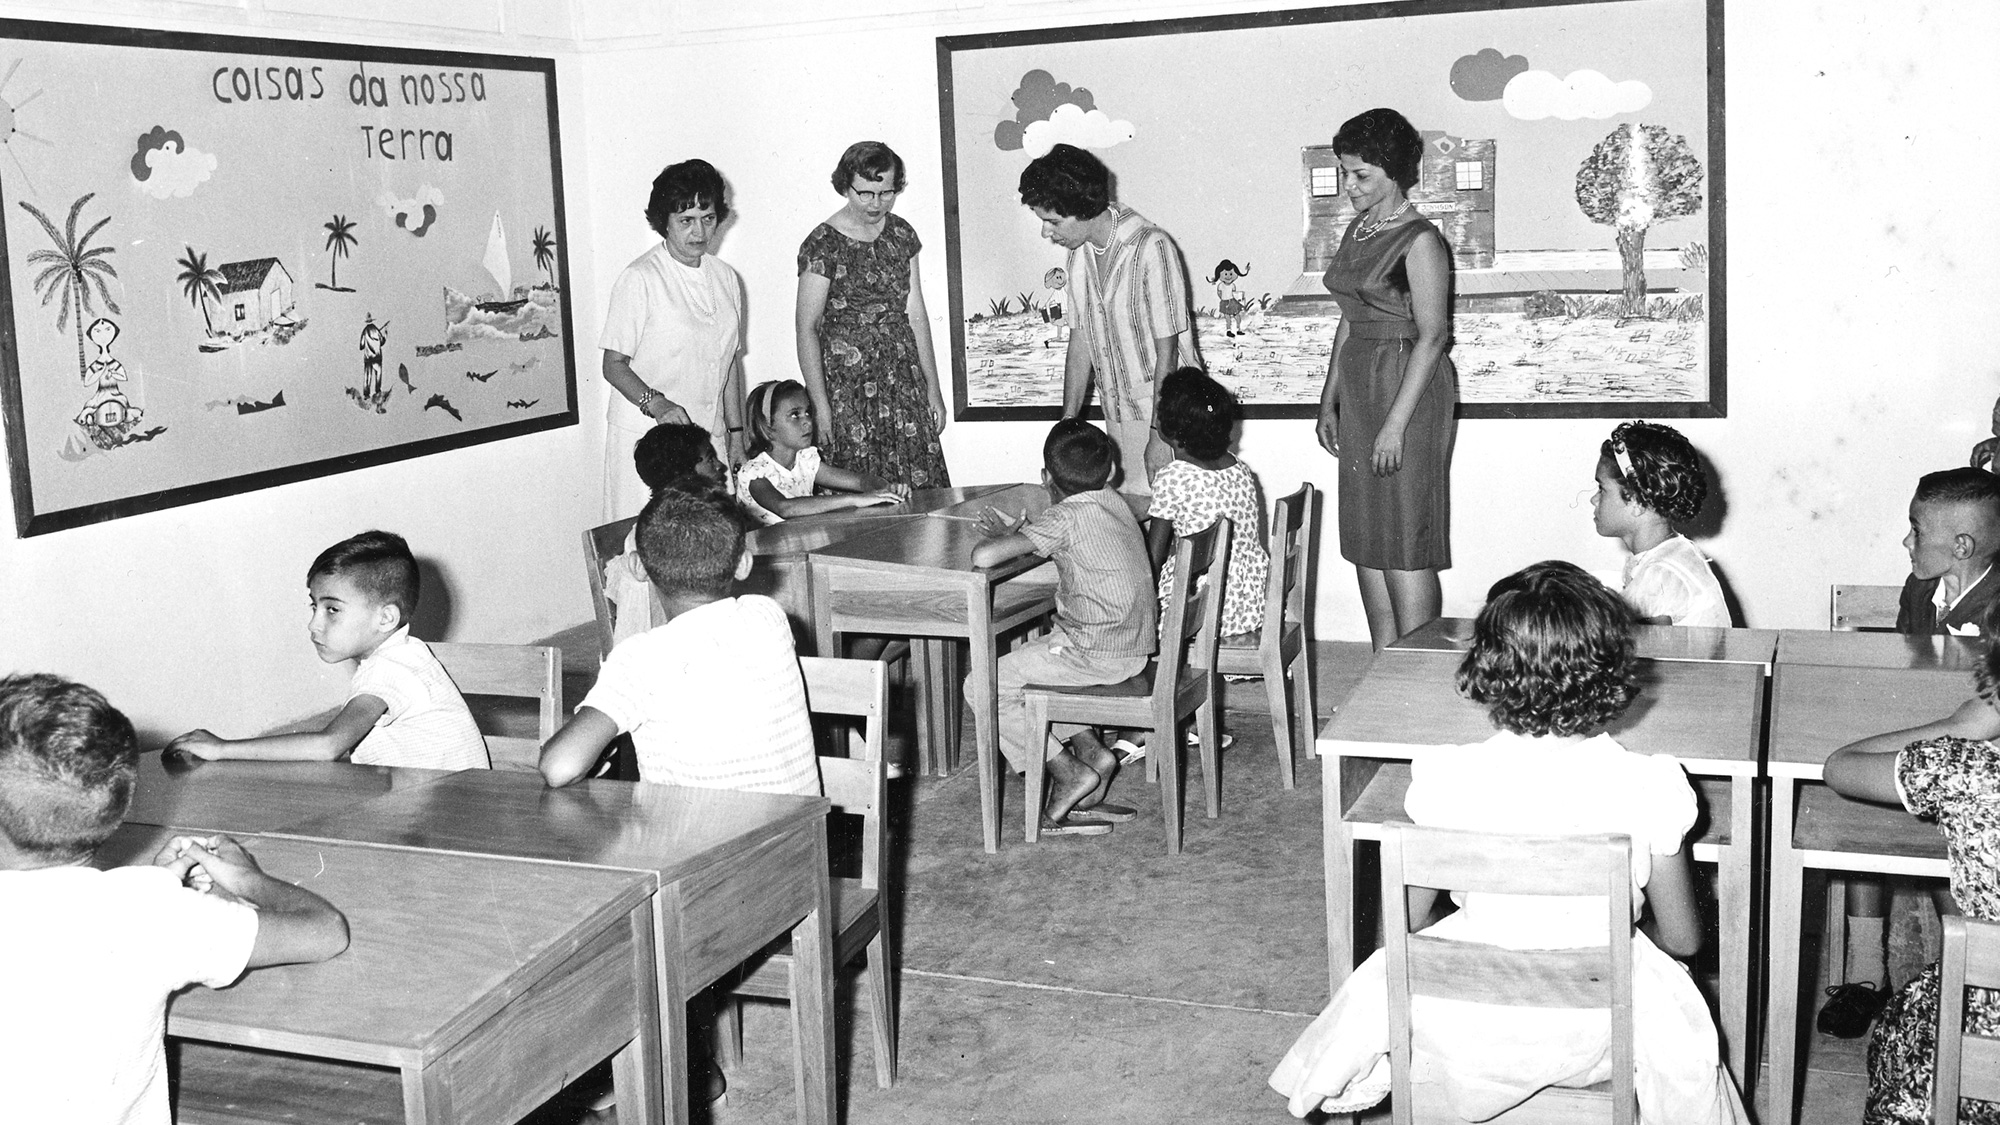 H.F. Johnson, Jr. established the Escola Johnson in 1960